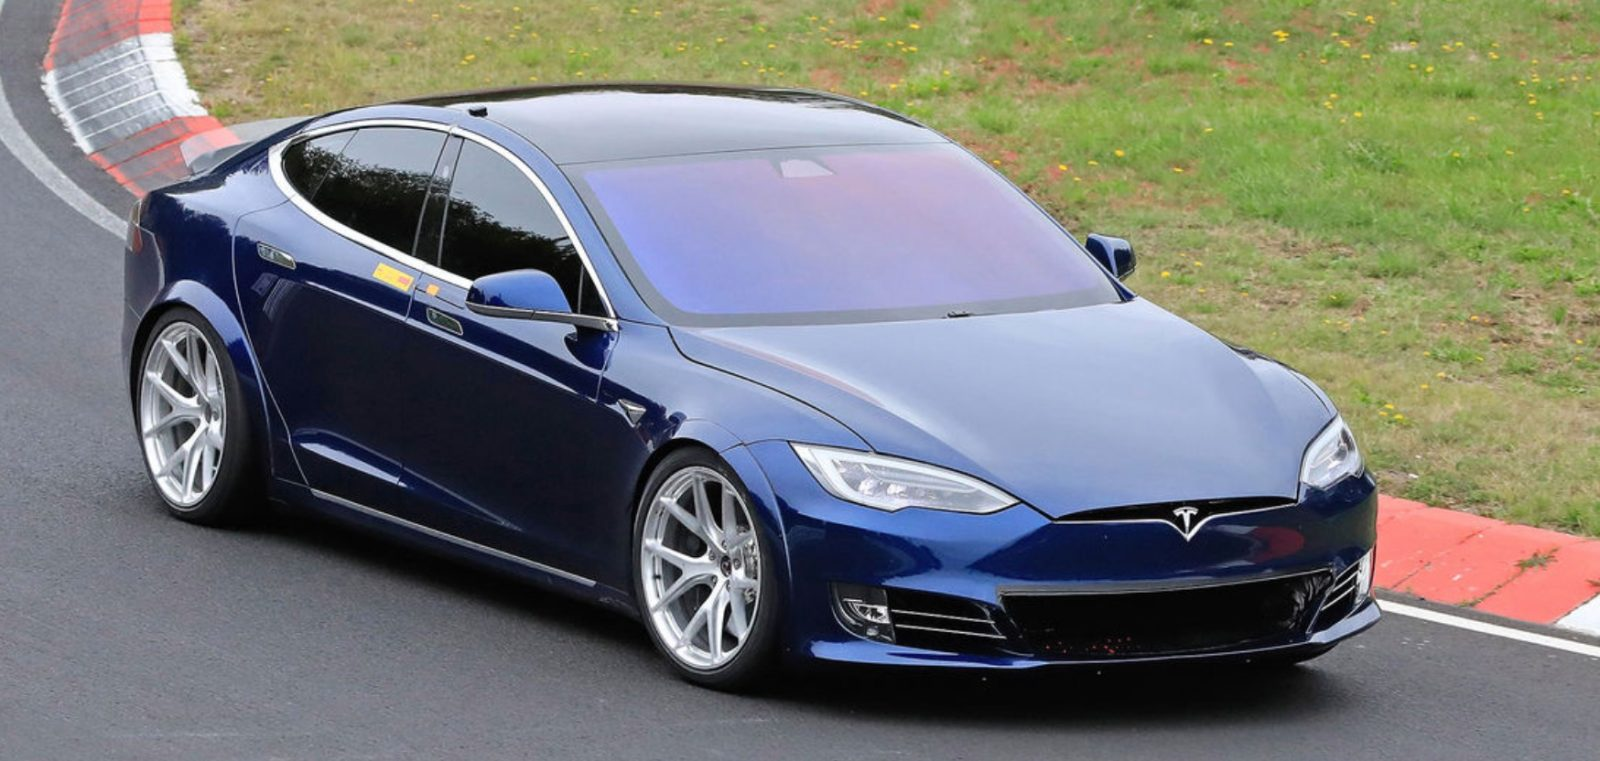 Tesla 'Plaid' Model S crushes Porsche Taycan's Nürburgring time, witness says